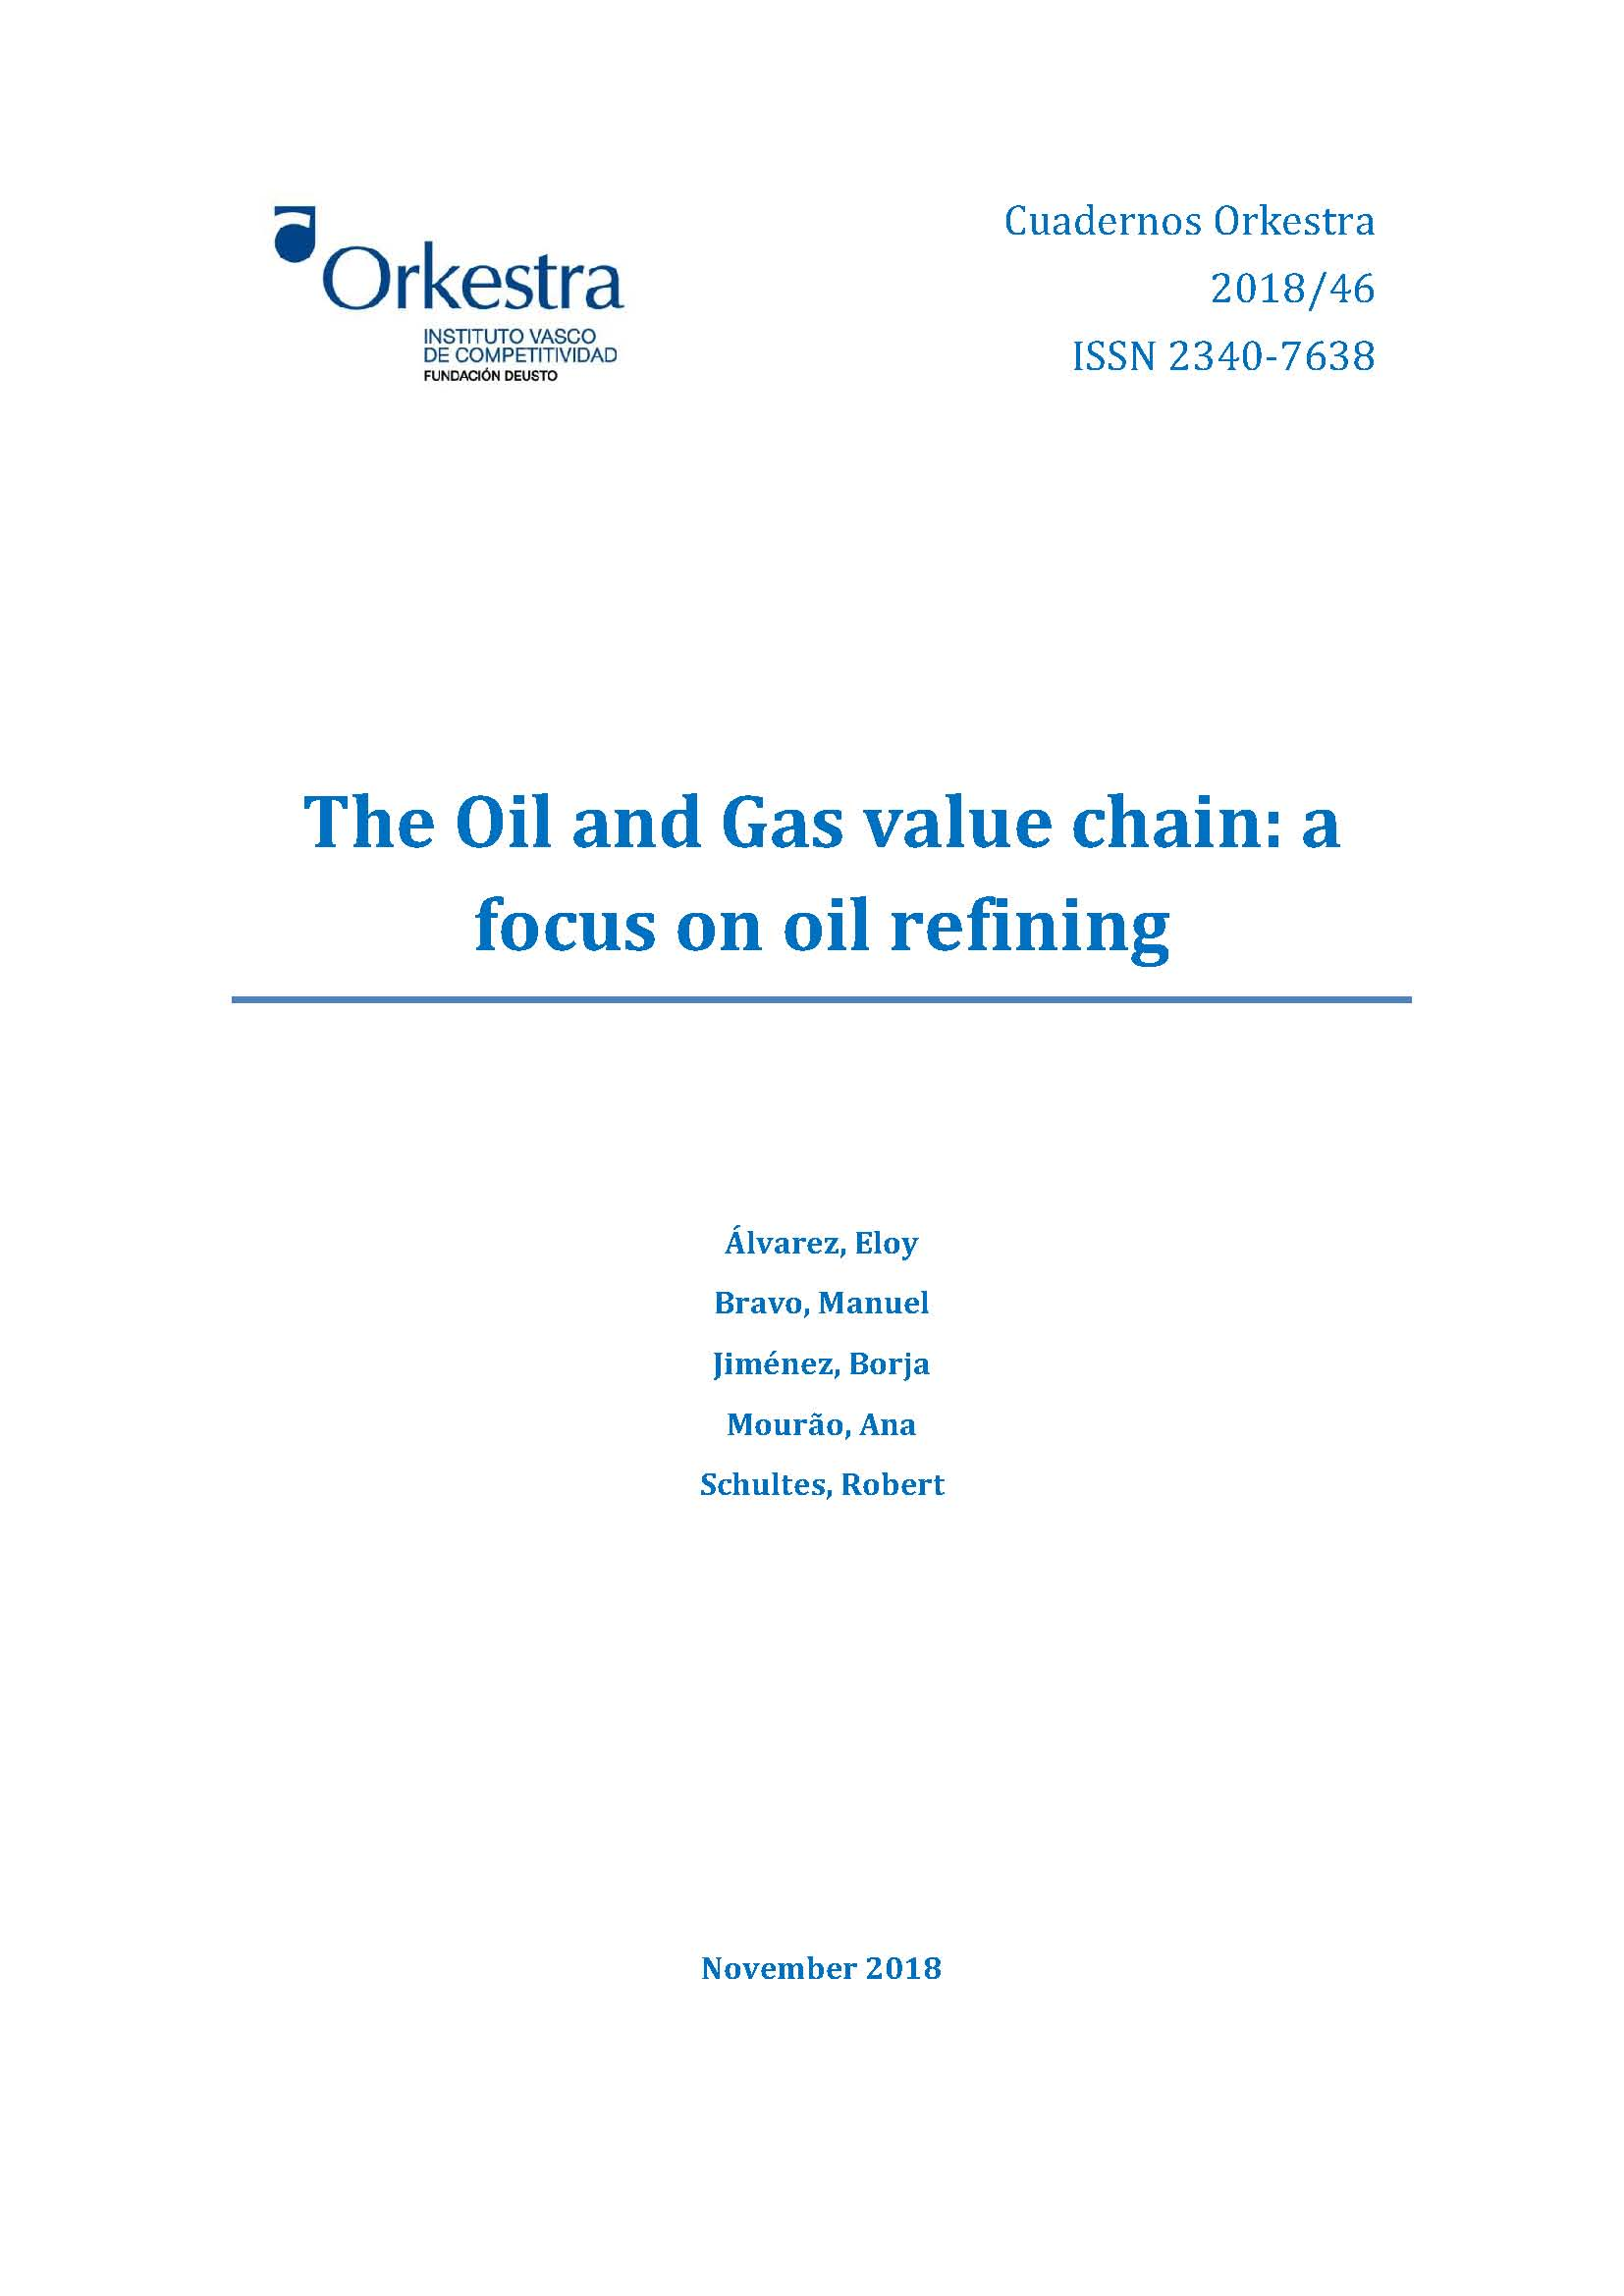 The Oil and Gas value chain: a focus on oil refining